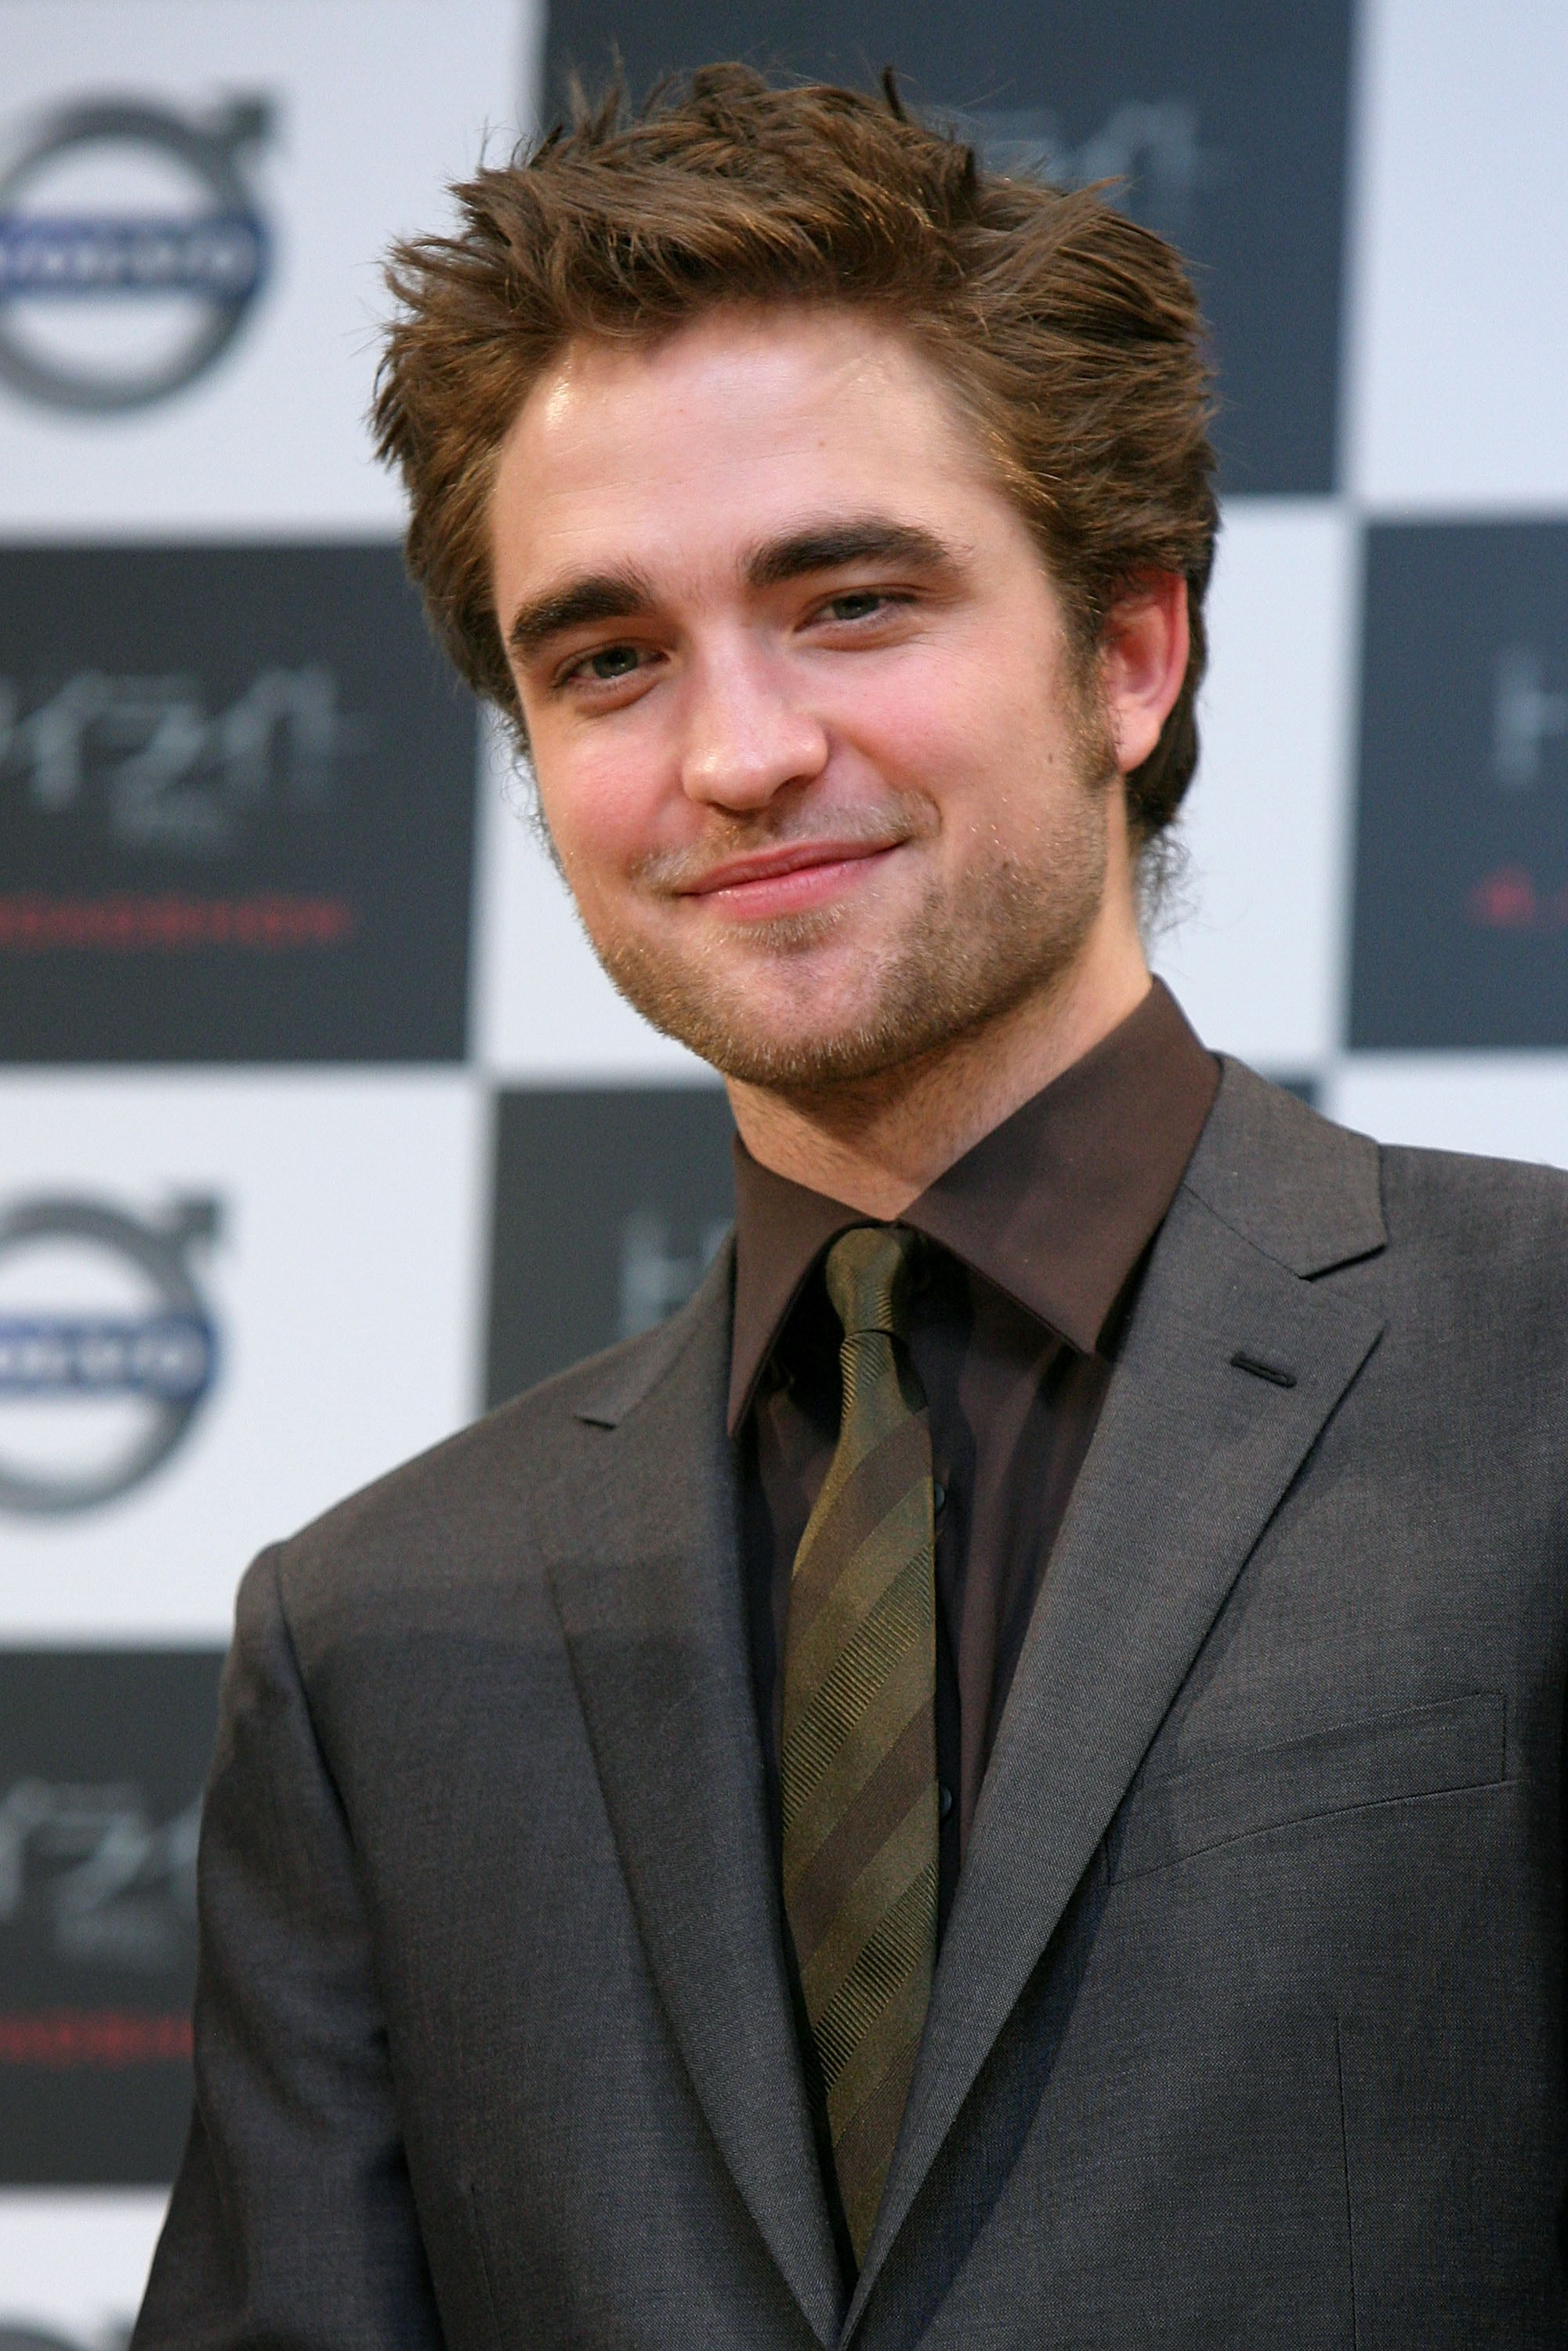 Photos Of Robert Pattinson Kristen Stewart Taylor Lautner At Twilight Premiere In Tokyo